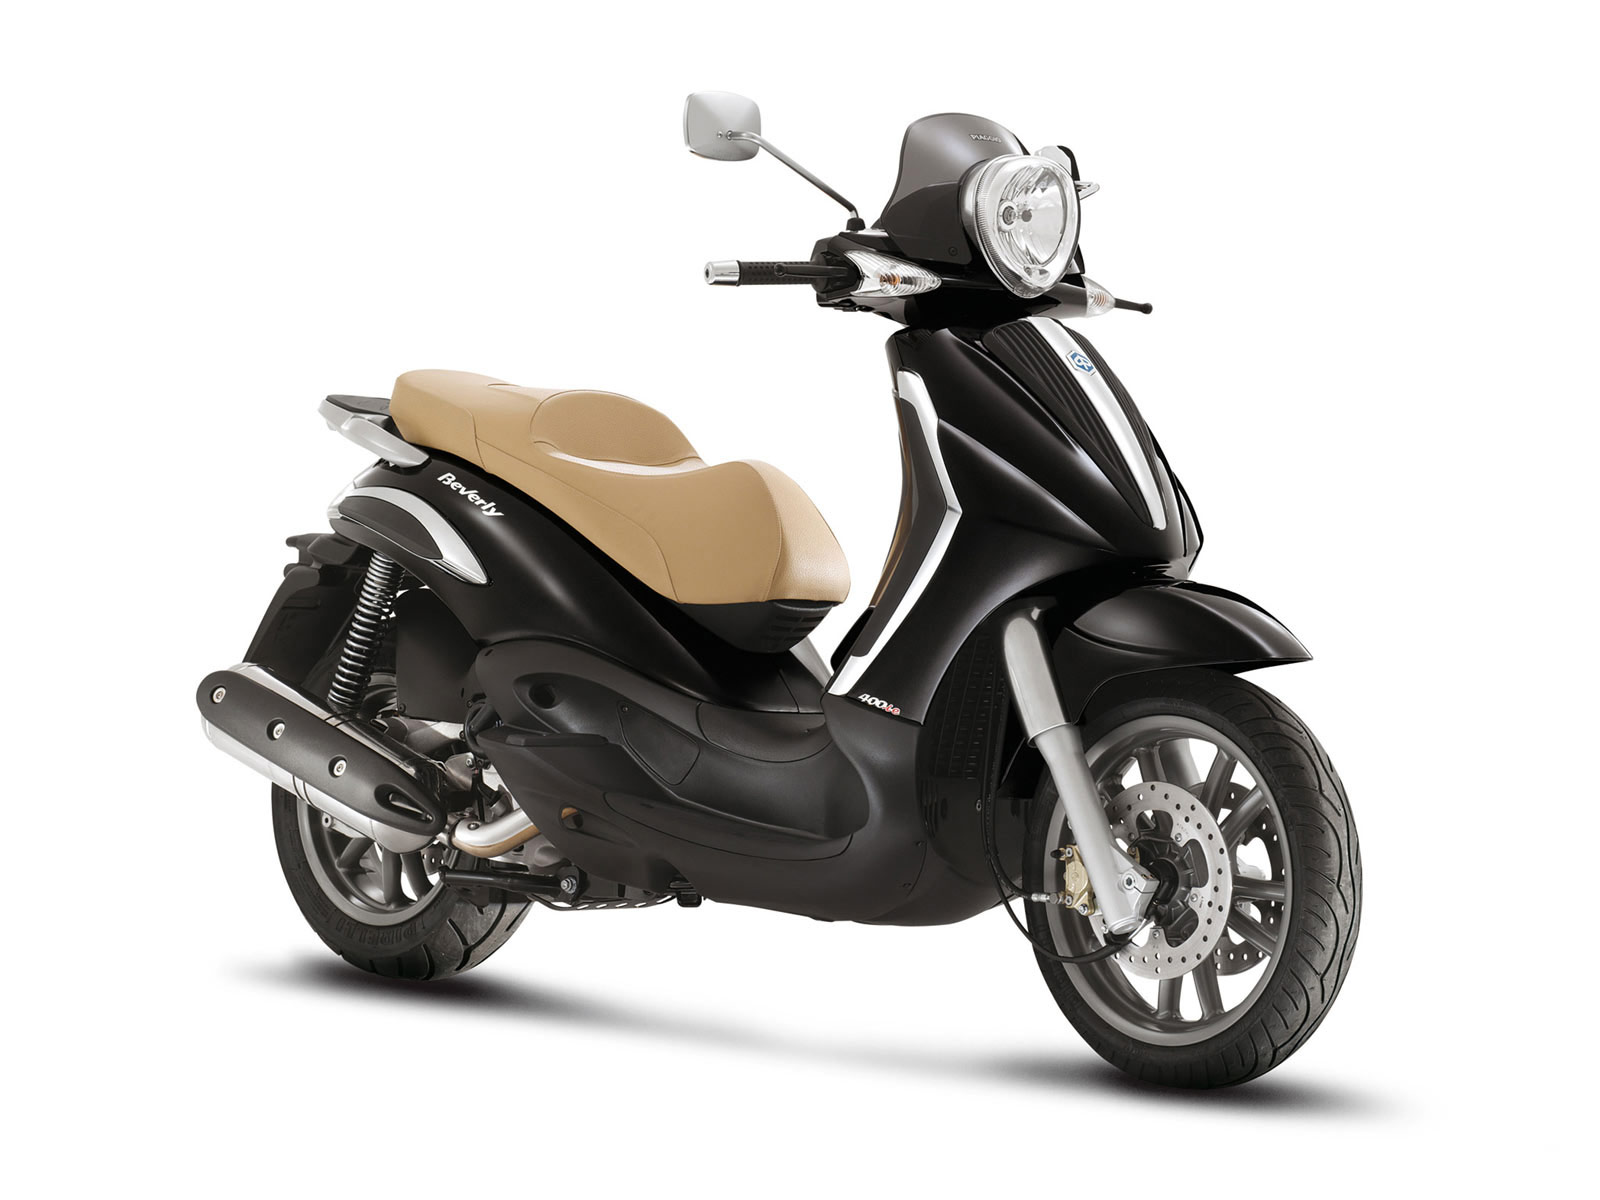 beverly tourer 400ie 2008 piaggio scooter picture. Black Bedroom Furniture Sets. Home Design Ideas